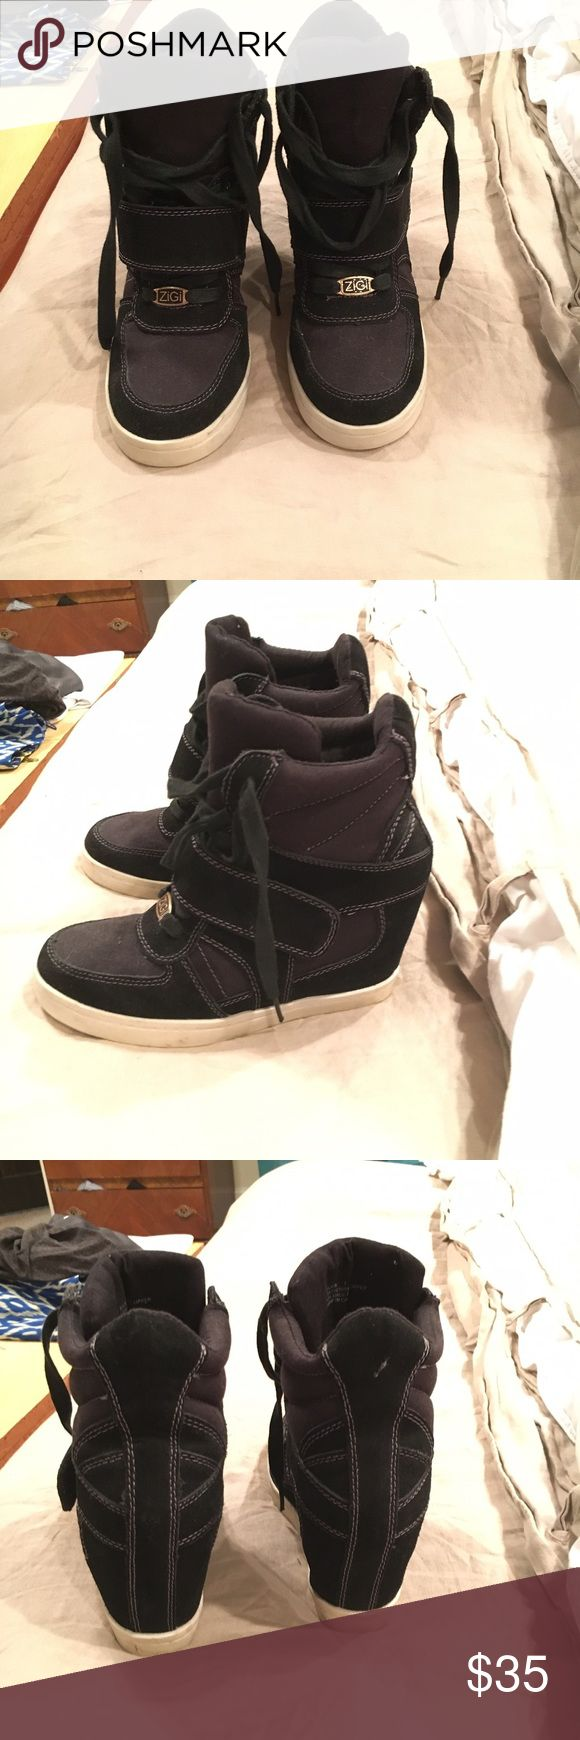 Zigi black wedge sneakers Great pair of wedge sneakers by Zigi. Only worn a couple times. Zigi Soho Shoes Sneakers